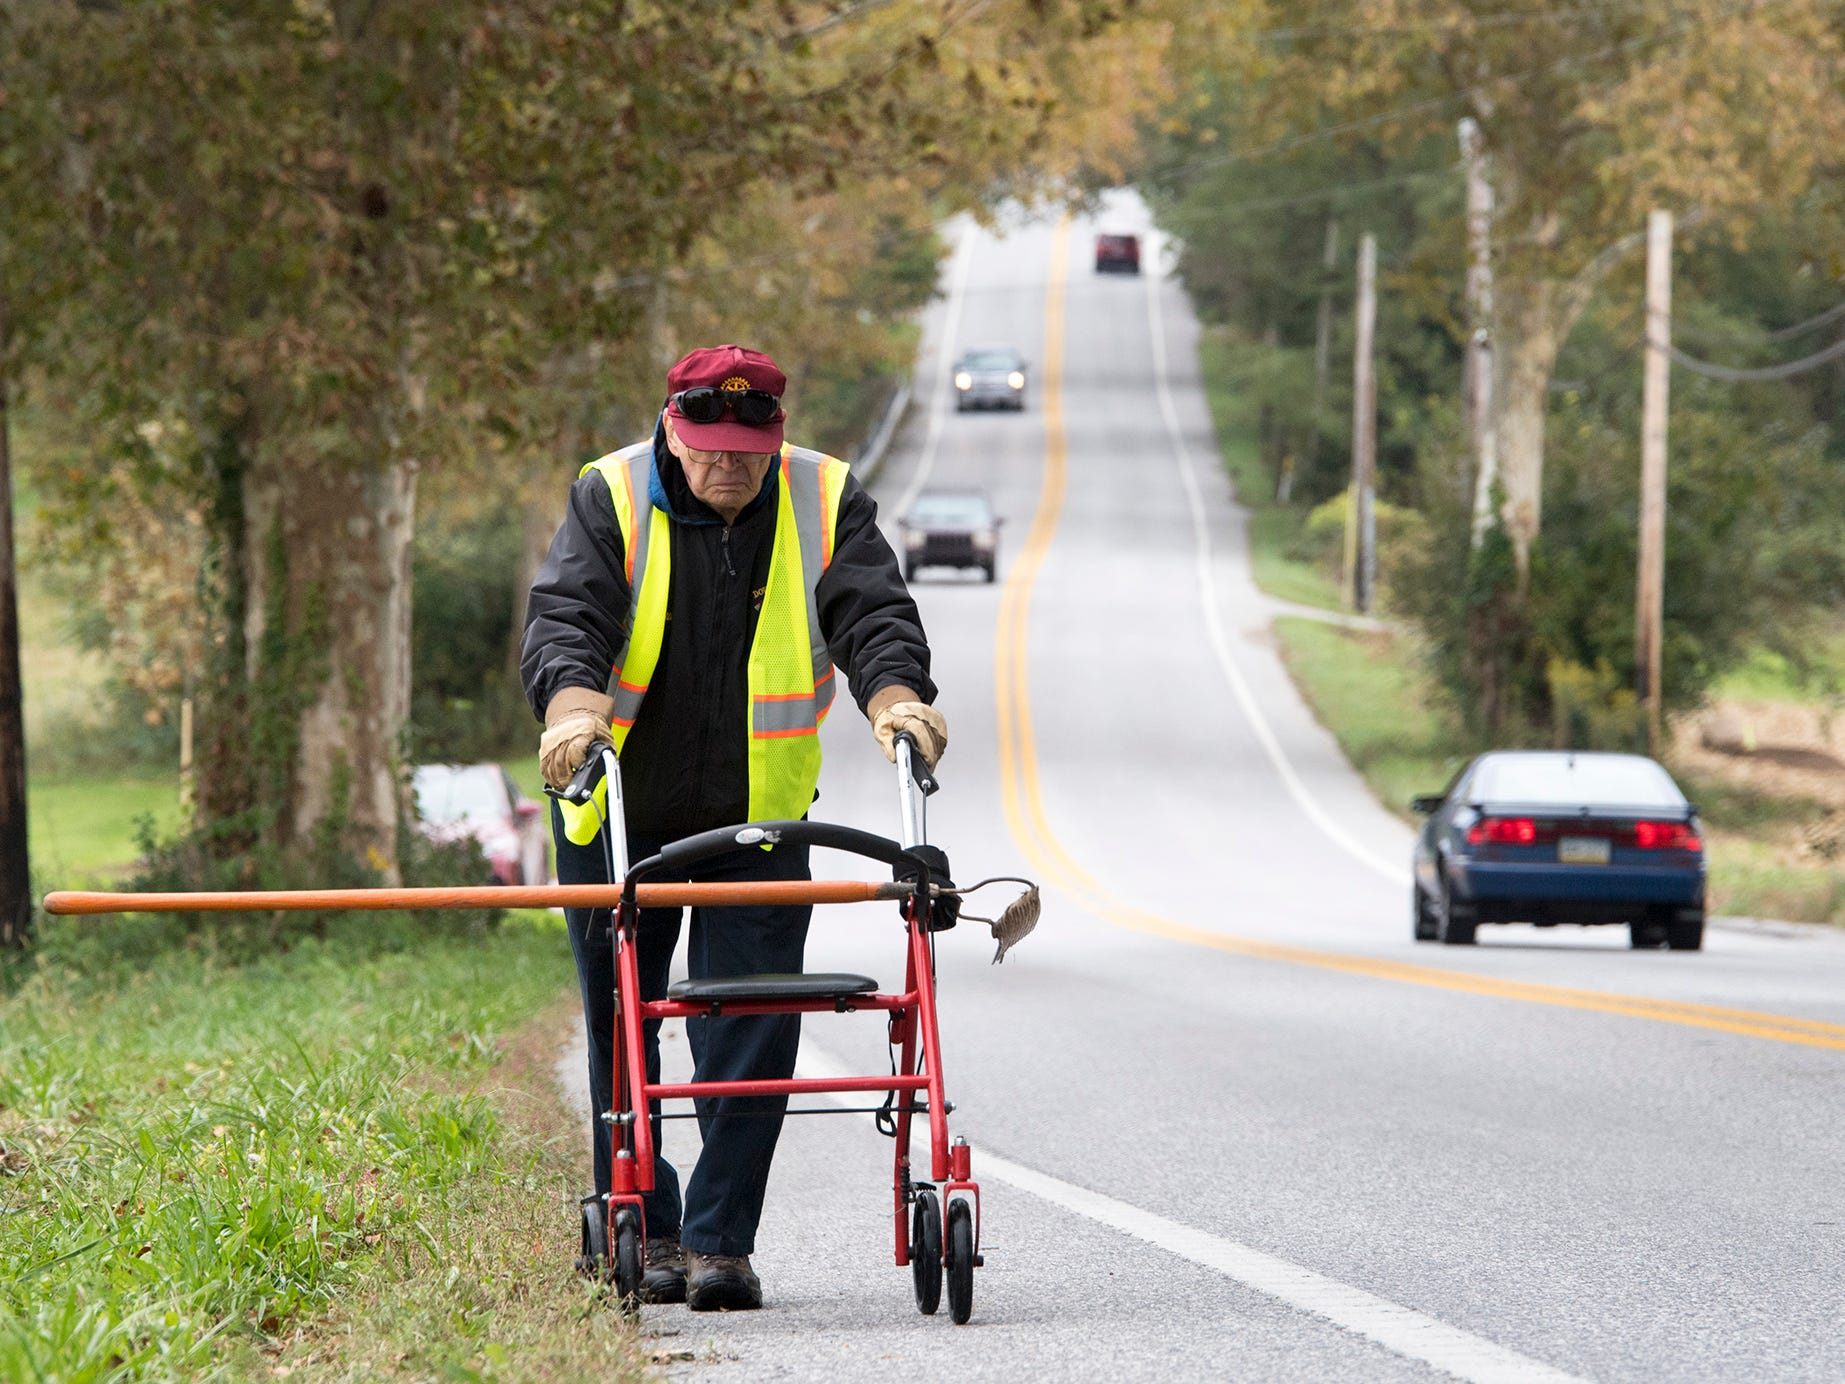 Paul Duryea walks up the Susquehanna Trail to help plant trees. Behind him is one of the original trees planted in 1920 on the Road of Remembrance Veterans Memorial.